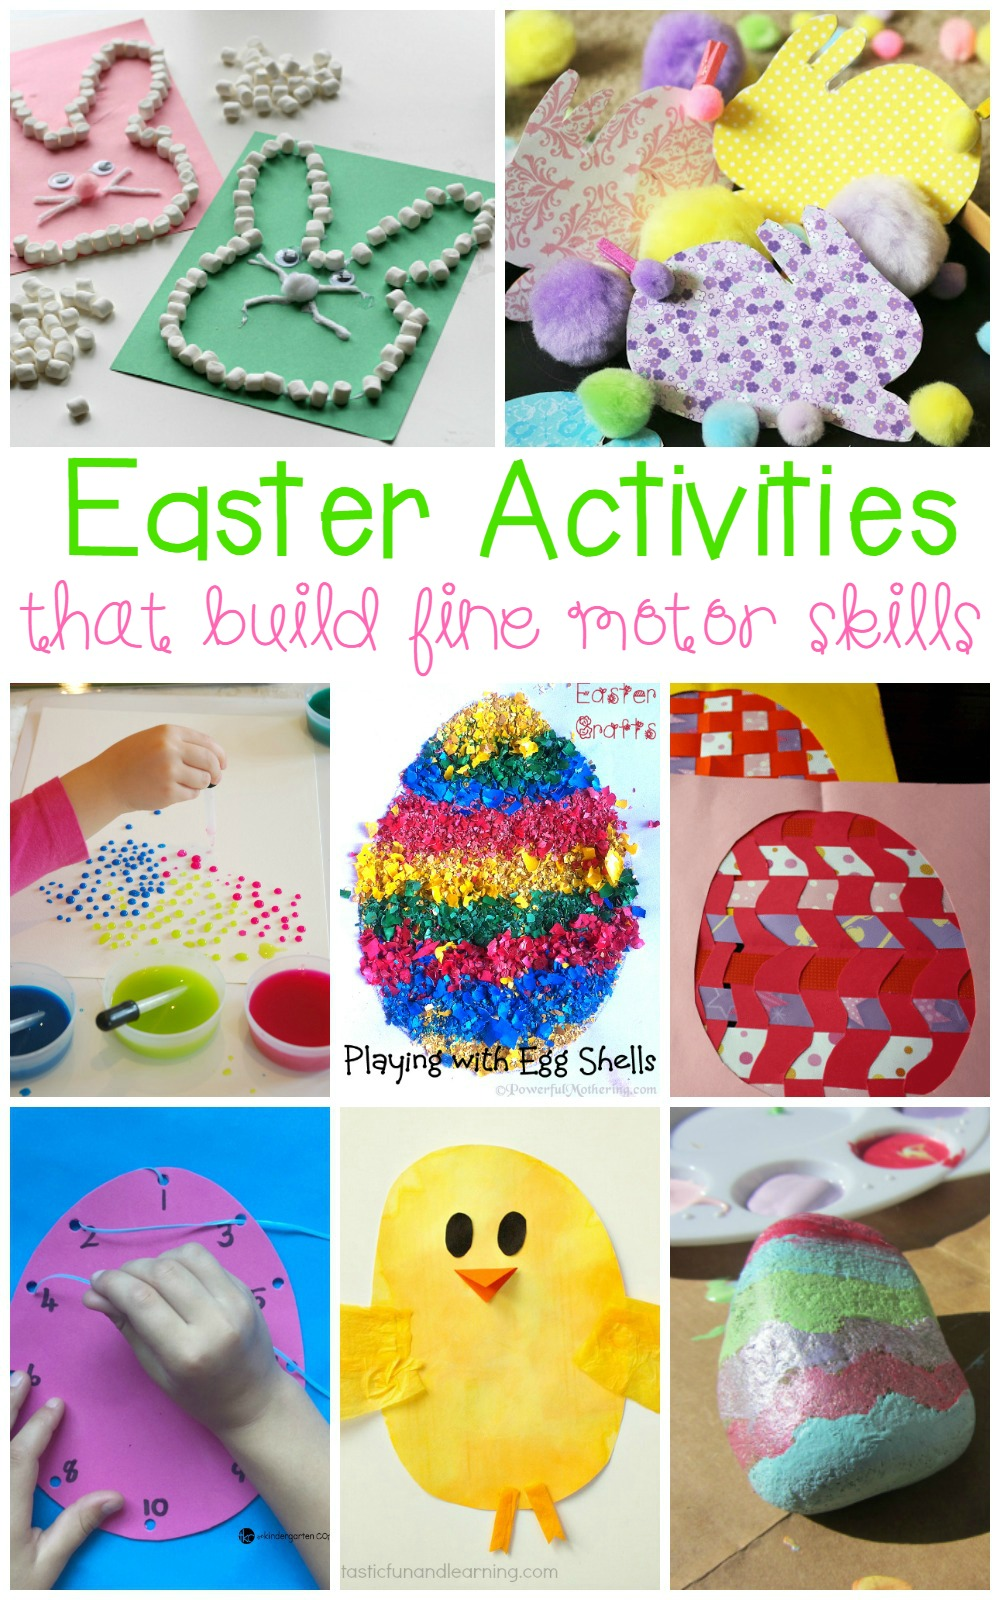 These adorable fine motor Easter activities are perfect for preschoolers and kindergartners who are still working on developing essential fine motor skills.